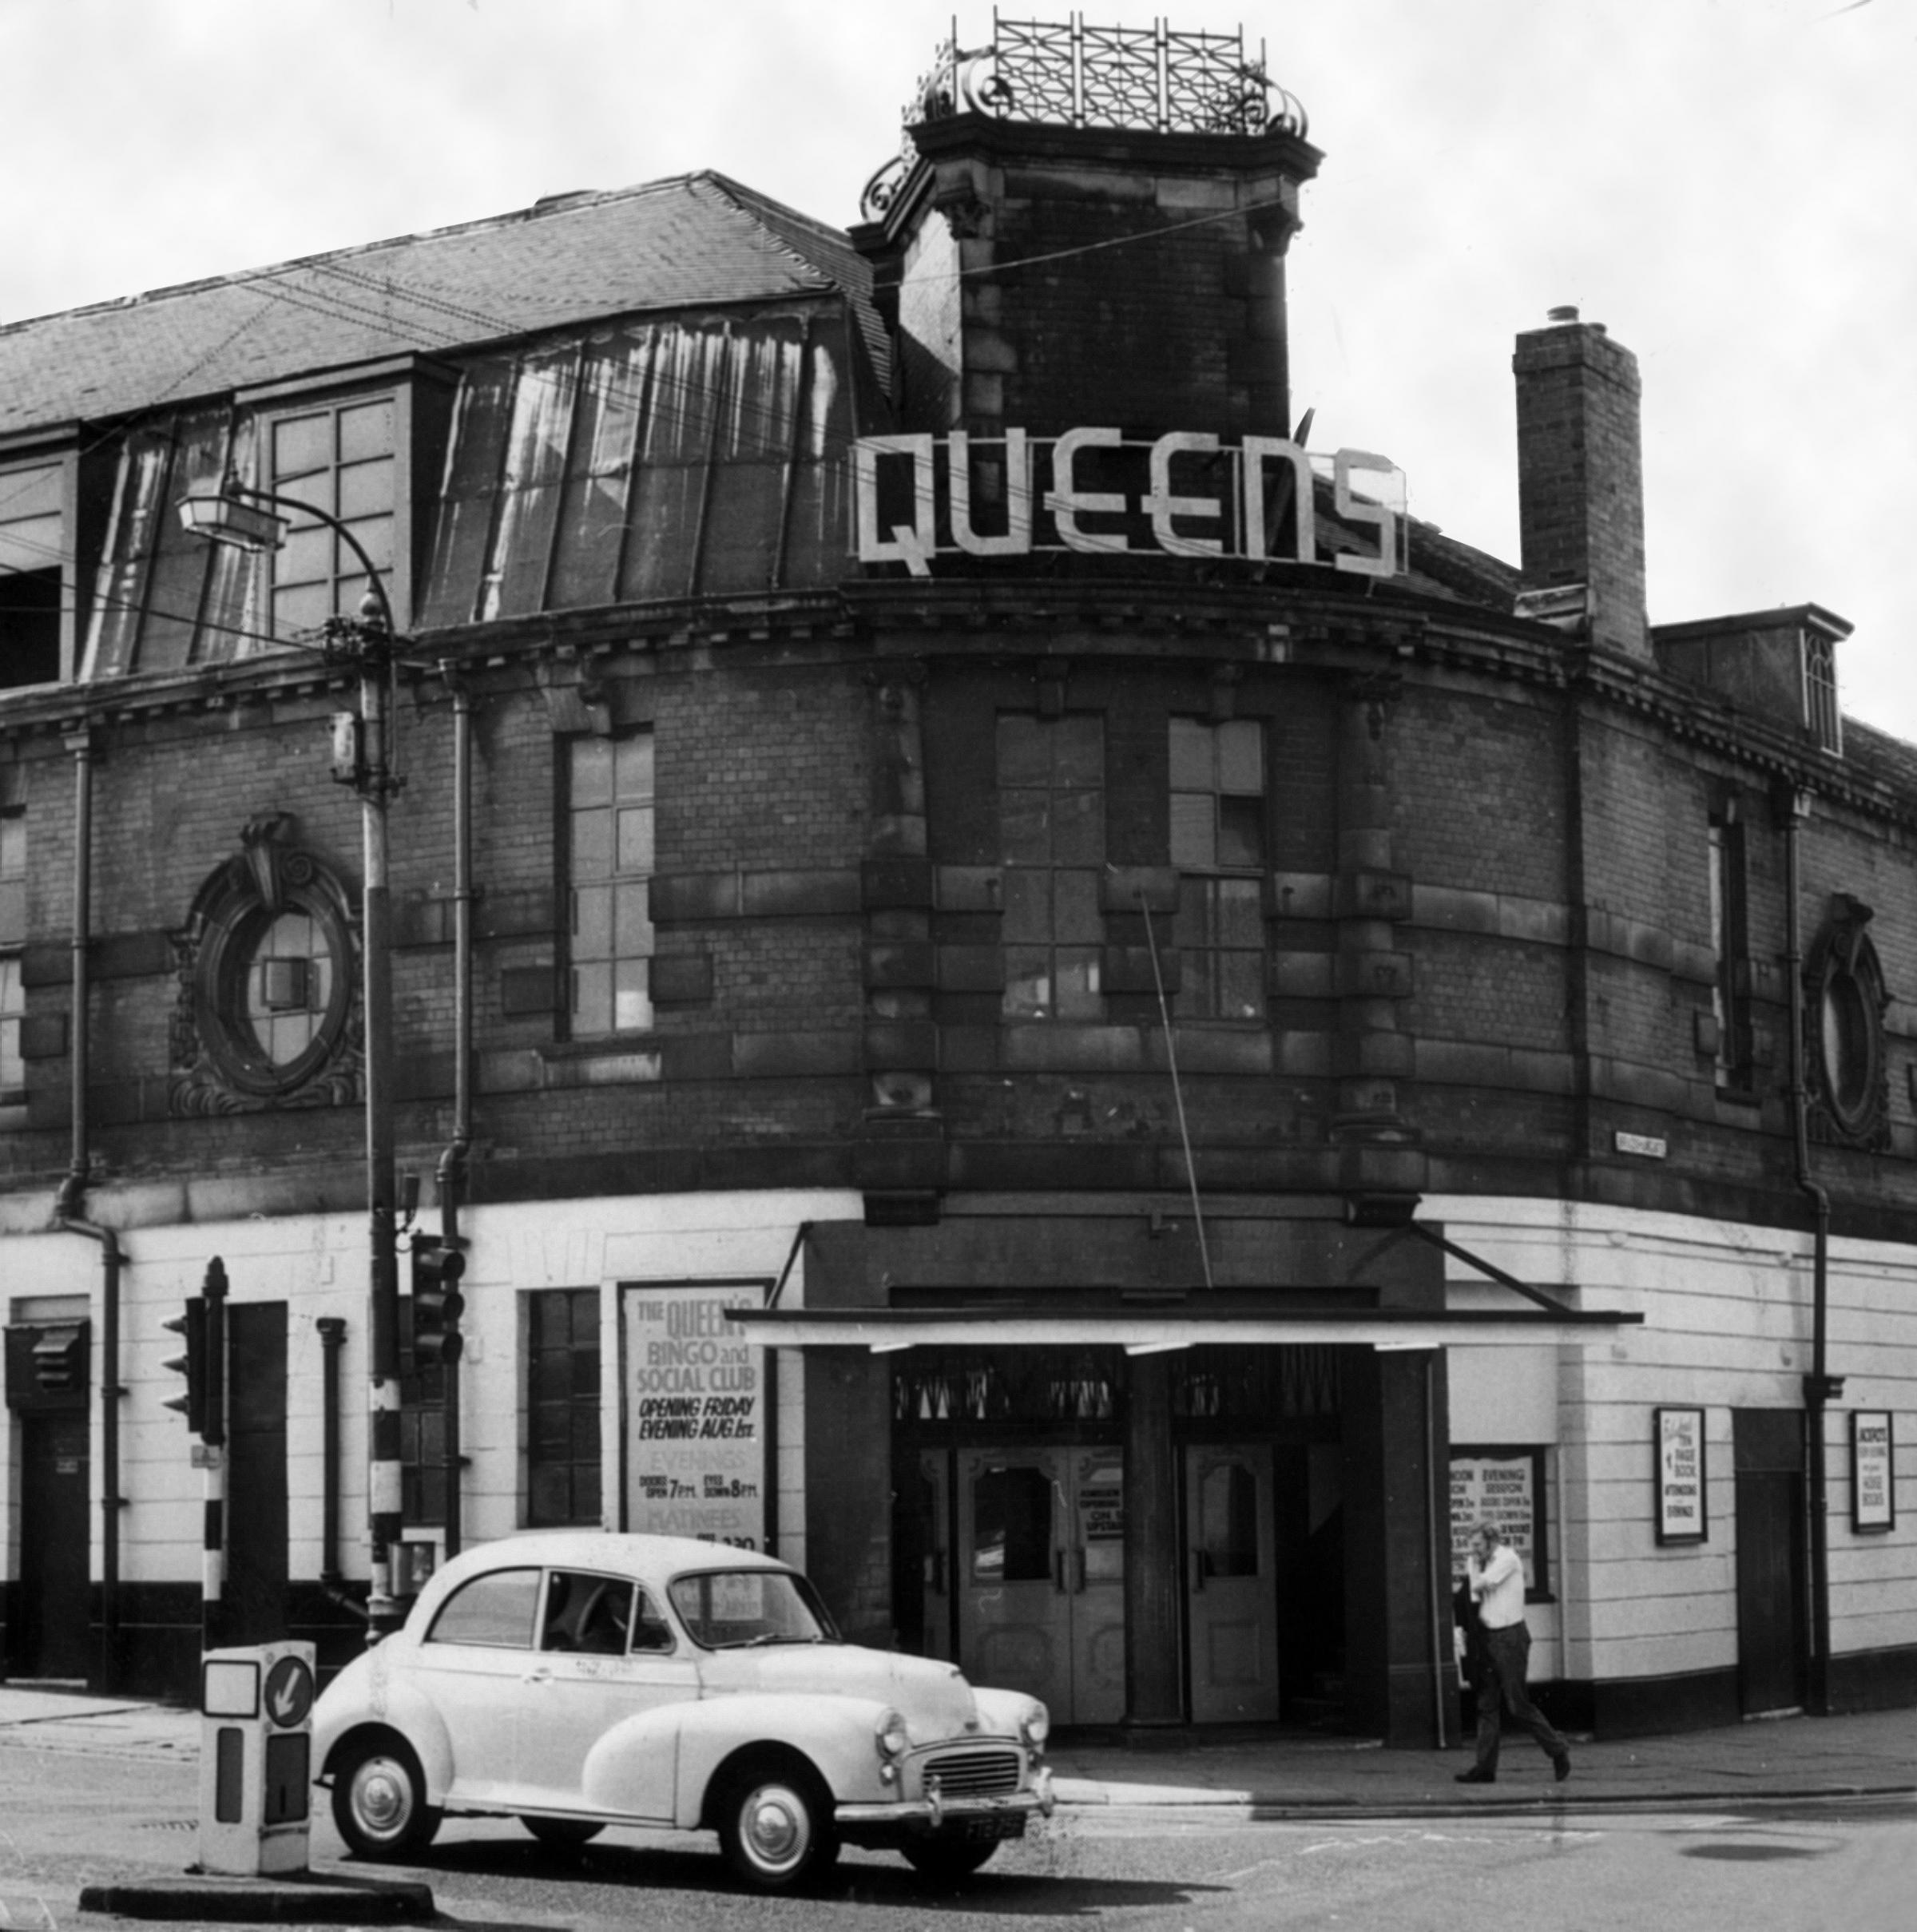 The Bolton News: The Queens, Trinity Street